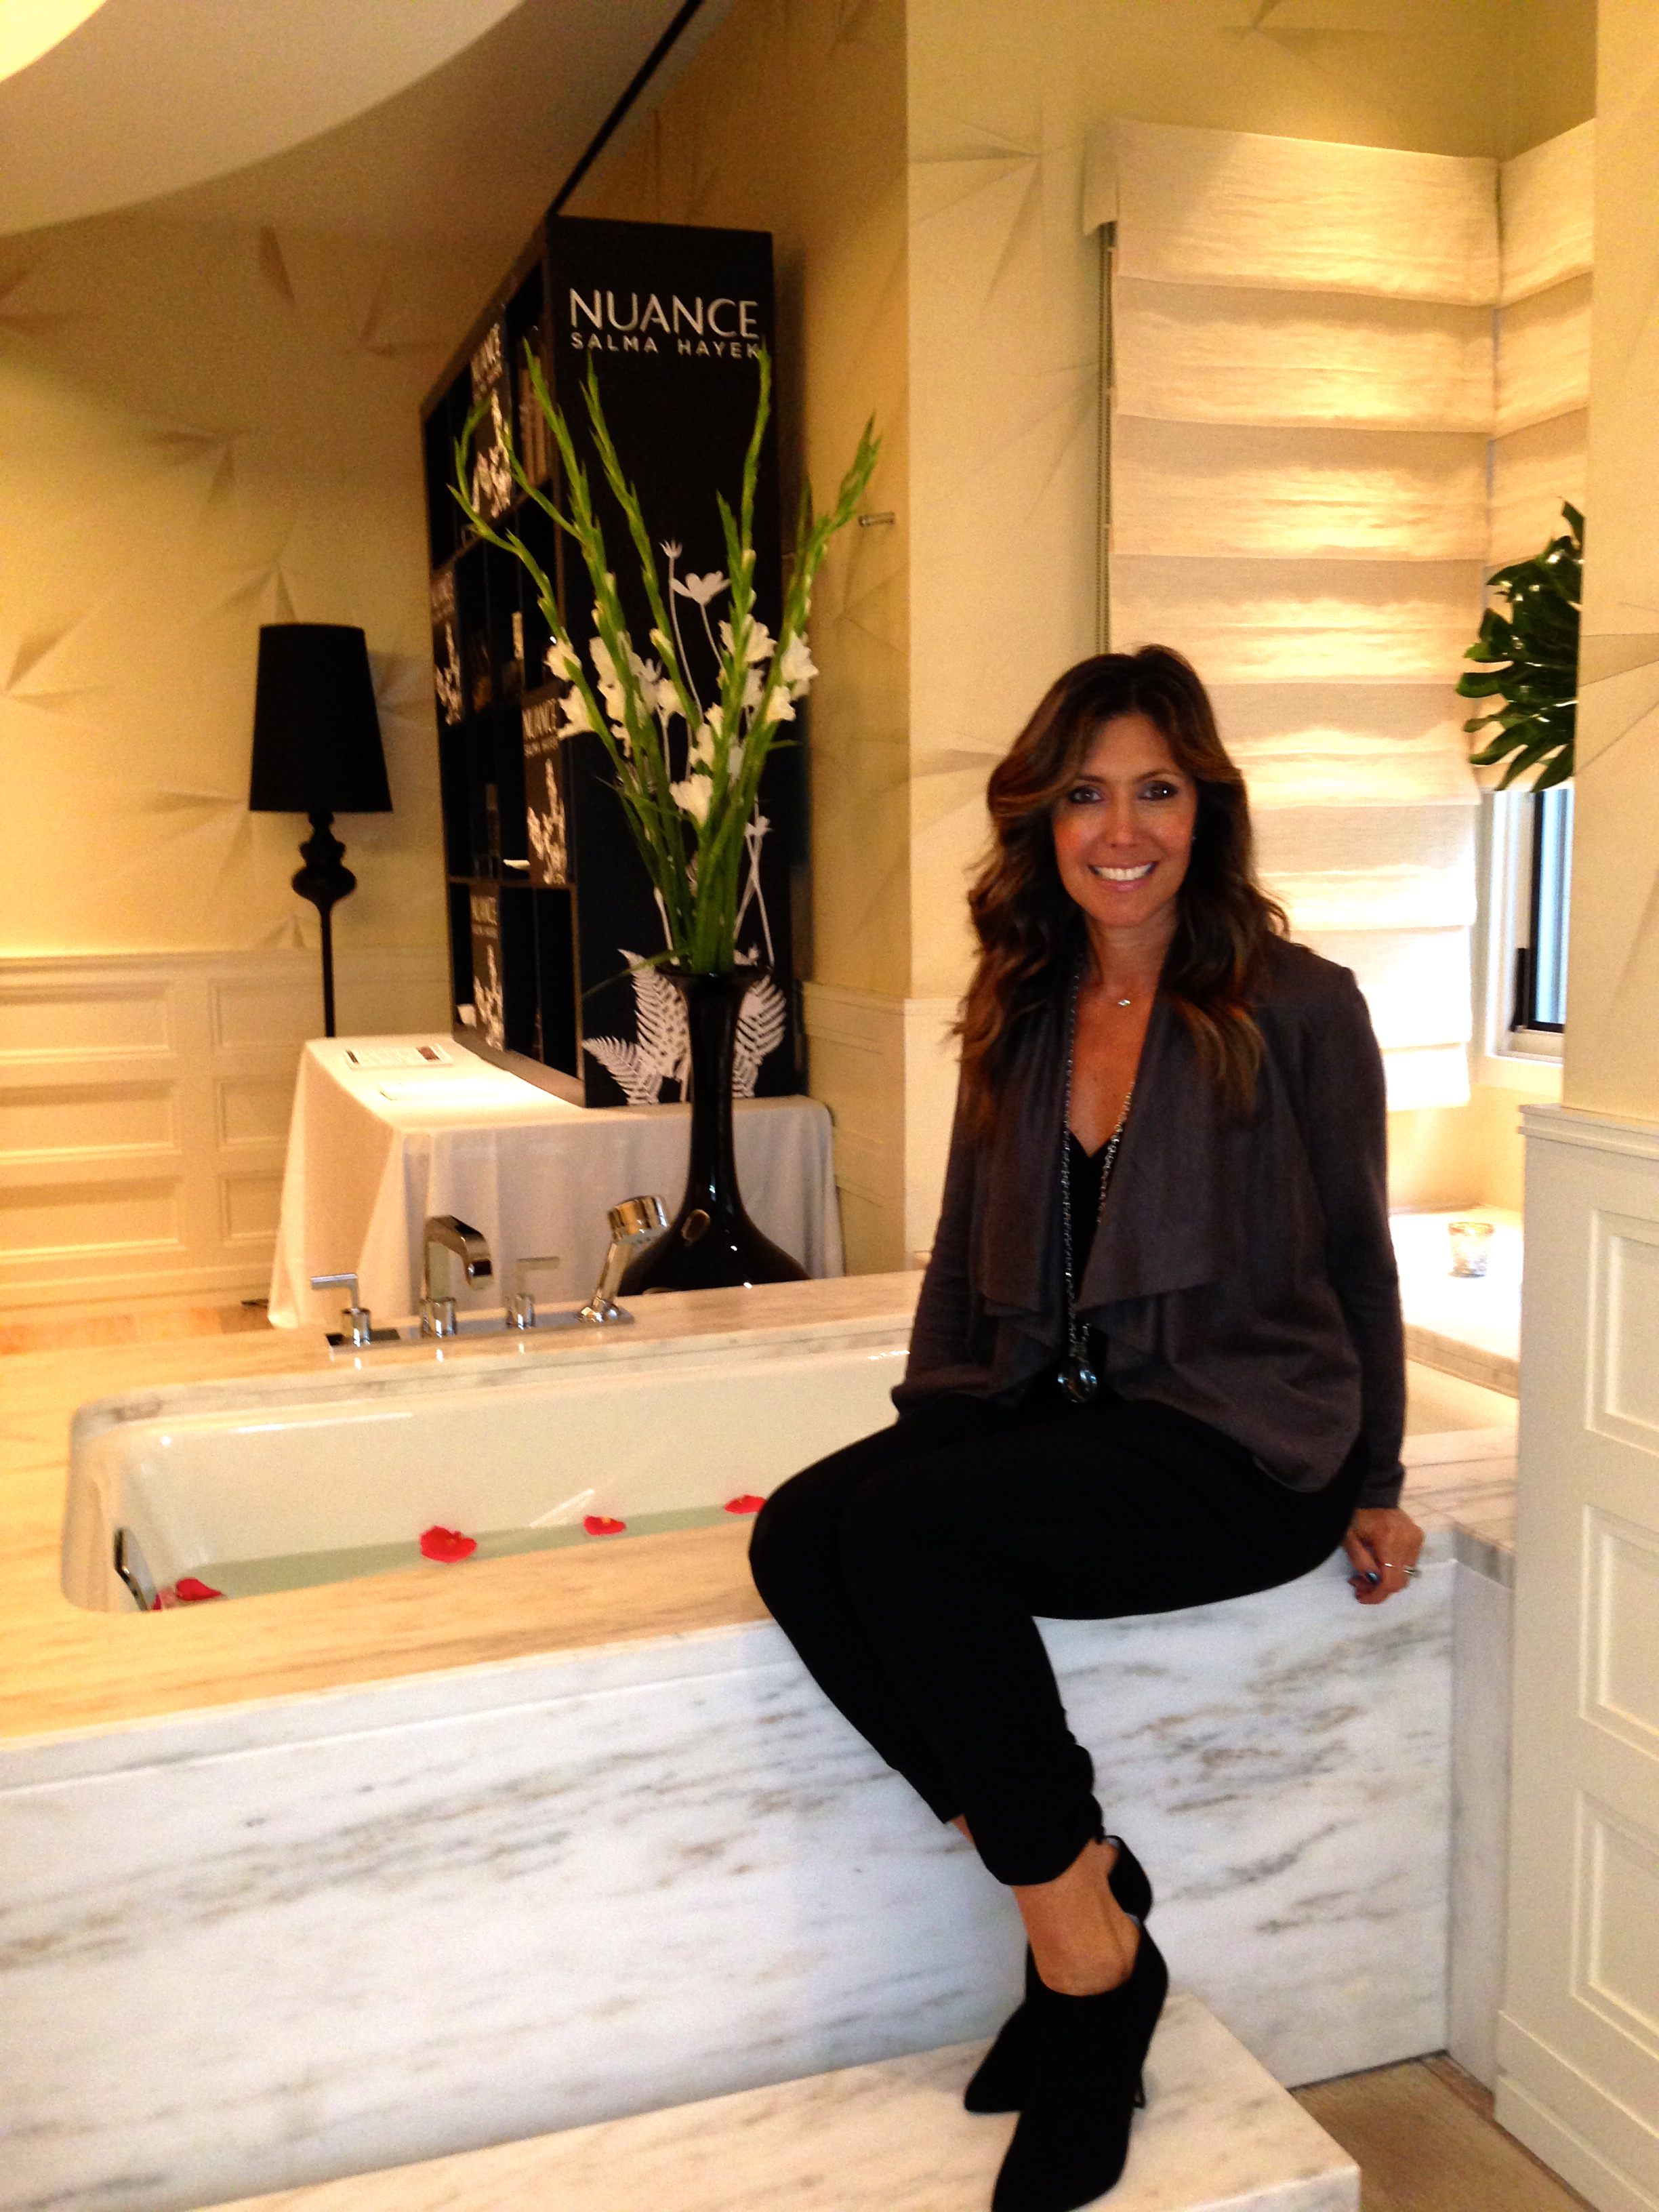 At Salma Hayek's Nuance for CVS beauty event at the Hotel Bel Air. Jumpsuit worn with suede grey jacket.